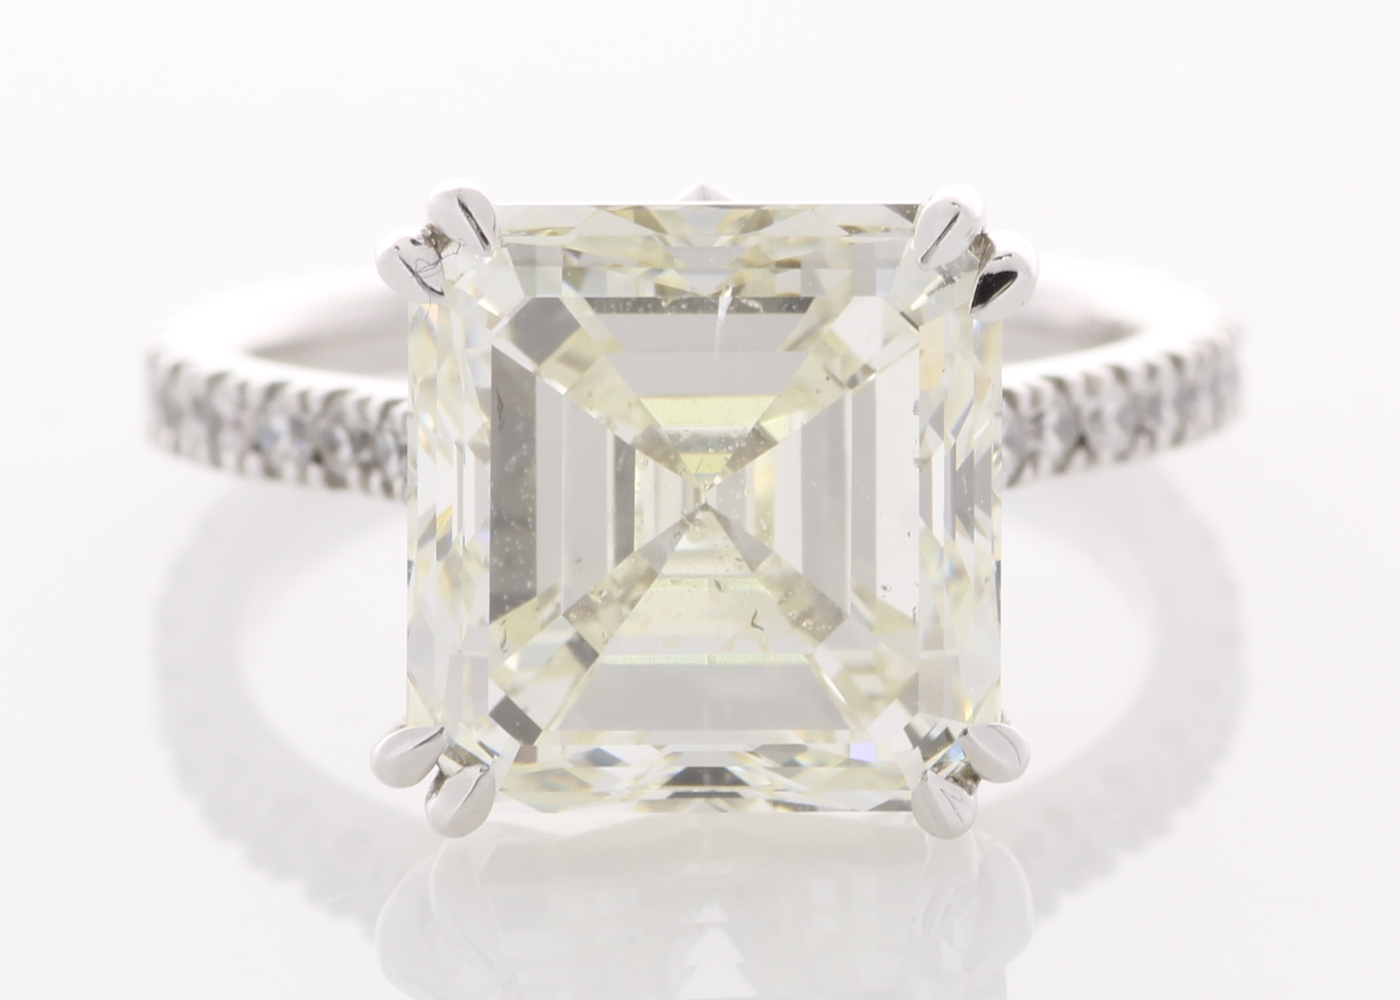 Lot 28 - 18ct White Gold Single Stone Prong Set With Stone Set Shoulders Diamond Ring 7.35